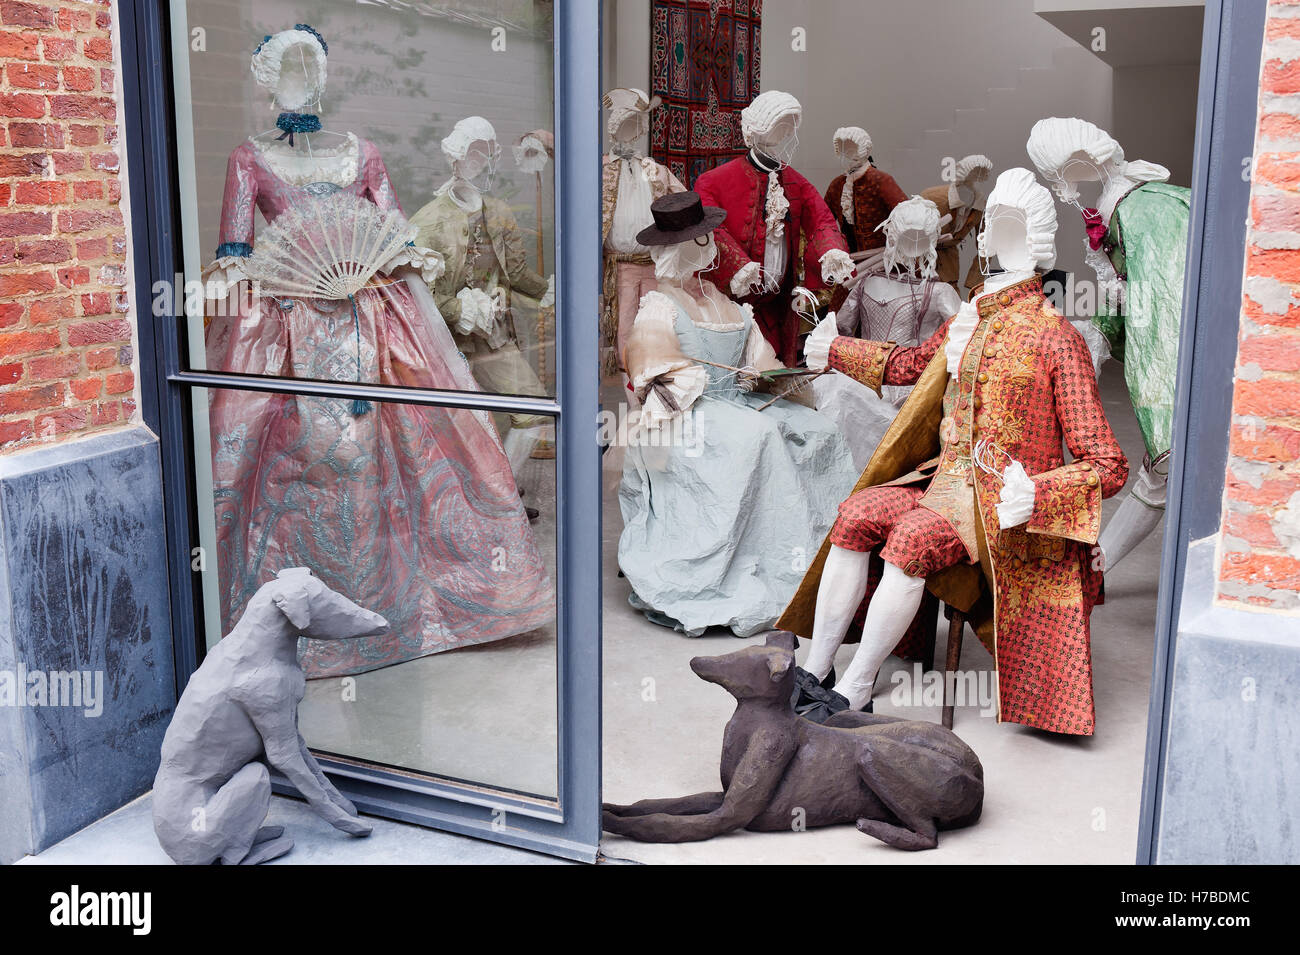 Room of wire models in historical replica paper garments at leisure, by Isabelle de Borchgrave - Stock Image